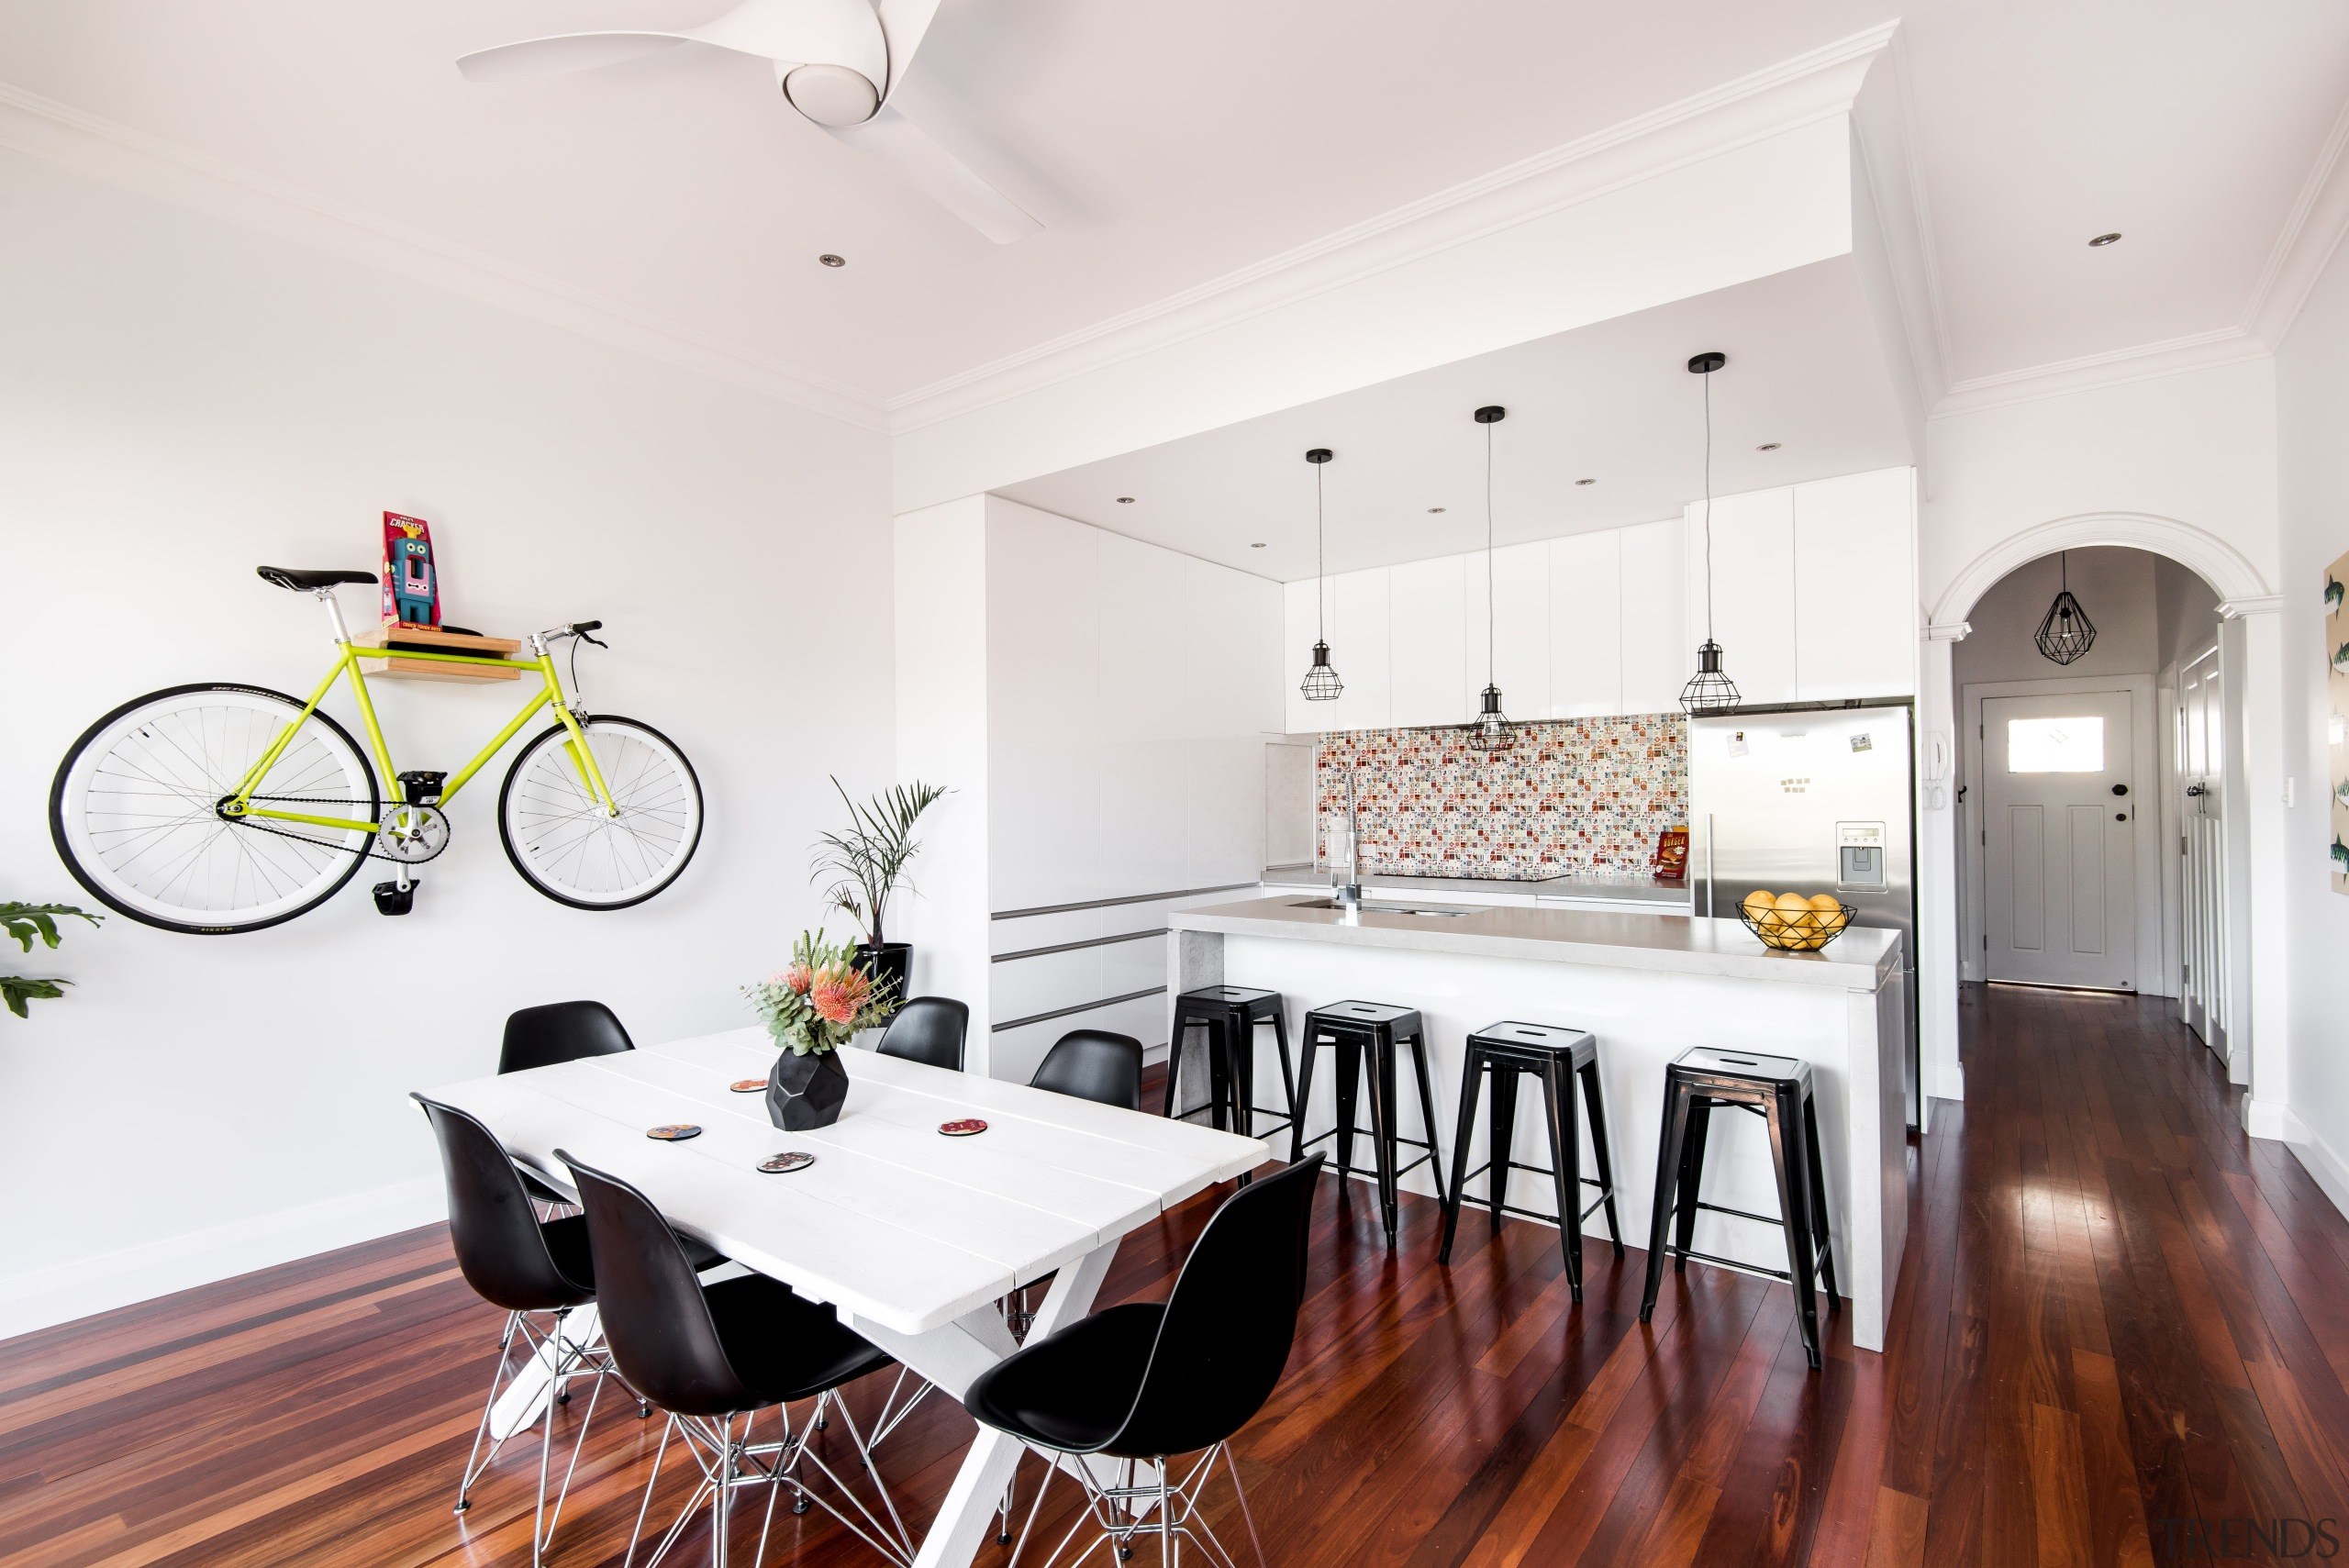 The kitchen as been opened up to the architecture, building, ceiling, design, dining room, floor, flooring, furniture, hardwood, home, house, interior design, kitchen, laminate flooring, property, real estate, room, table, wall, wood, wood flooring, white